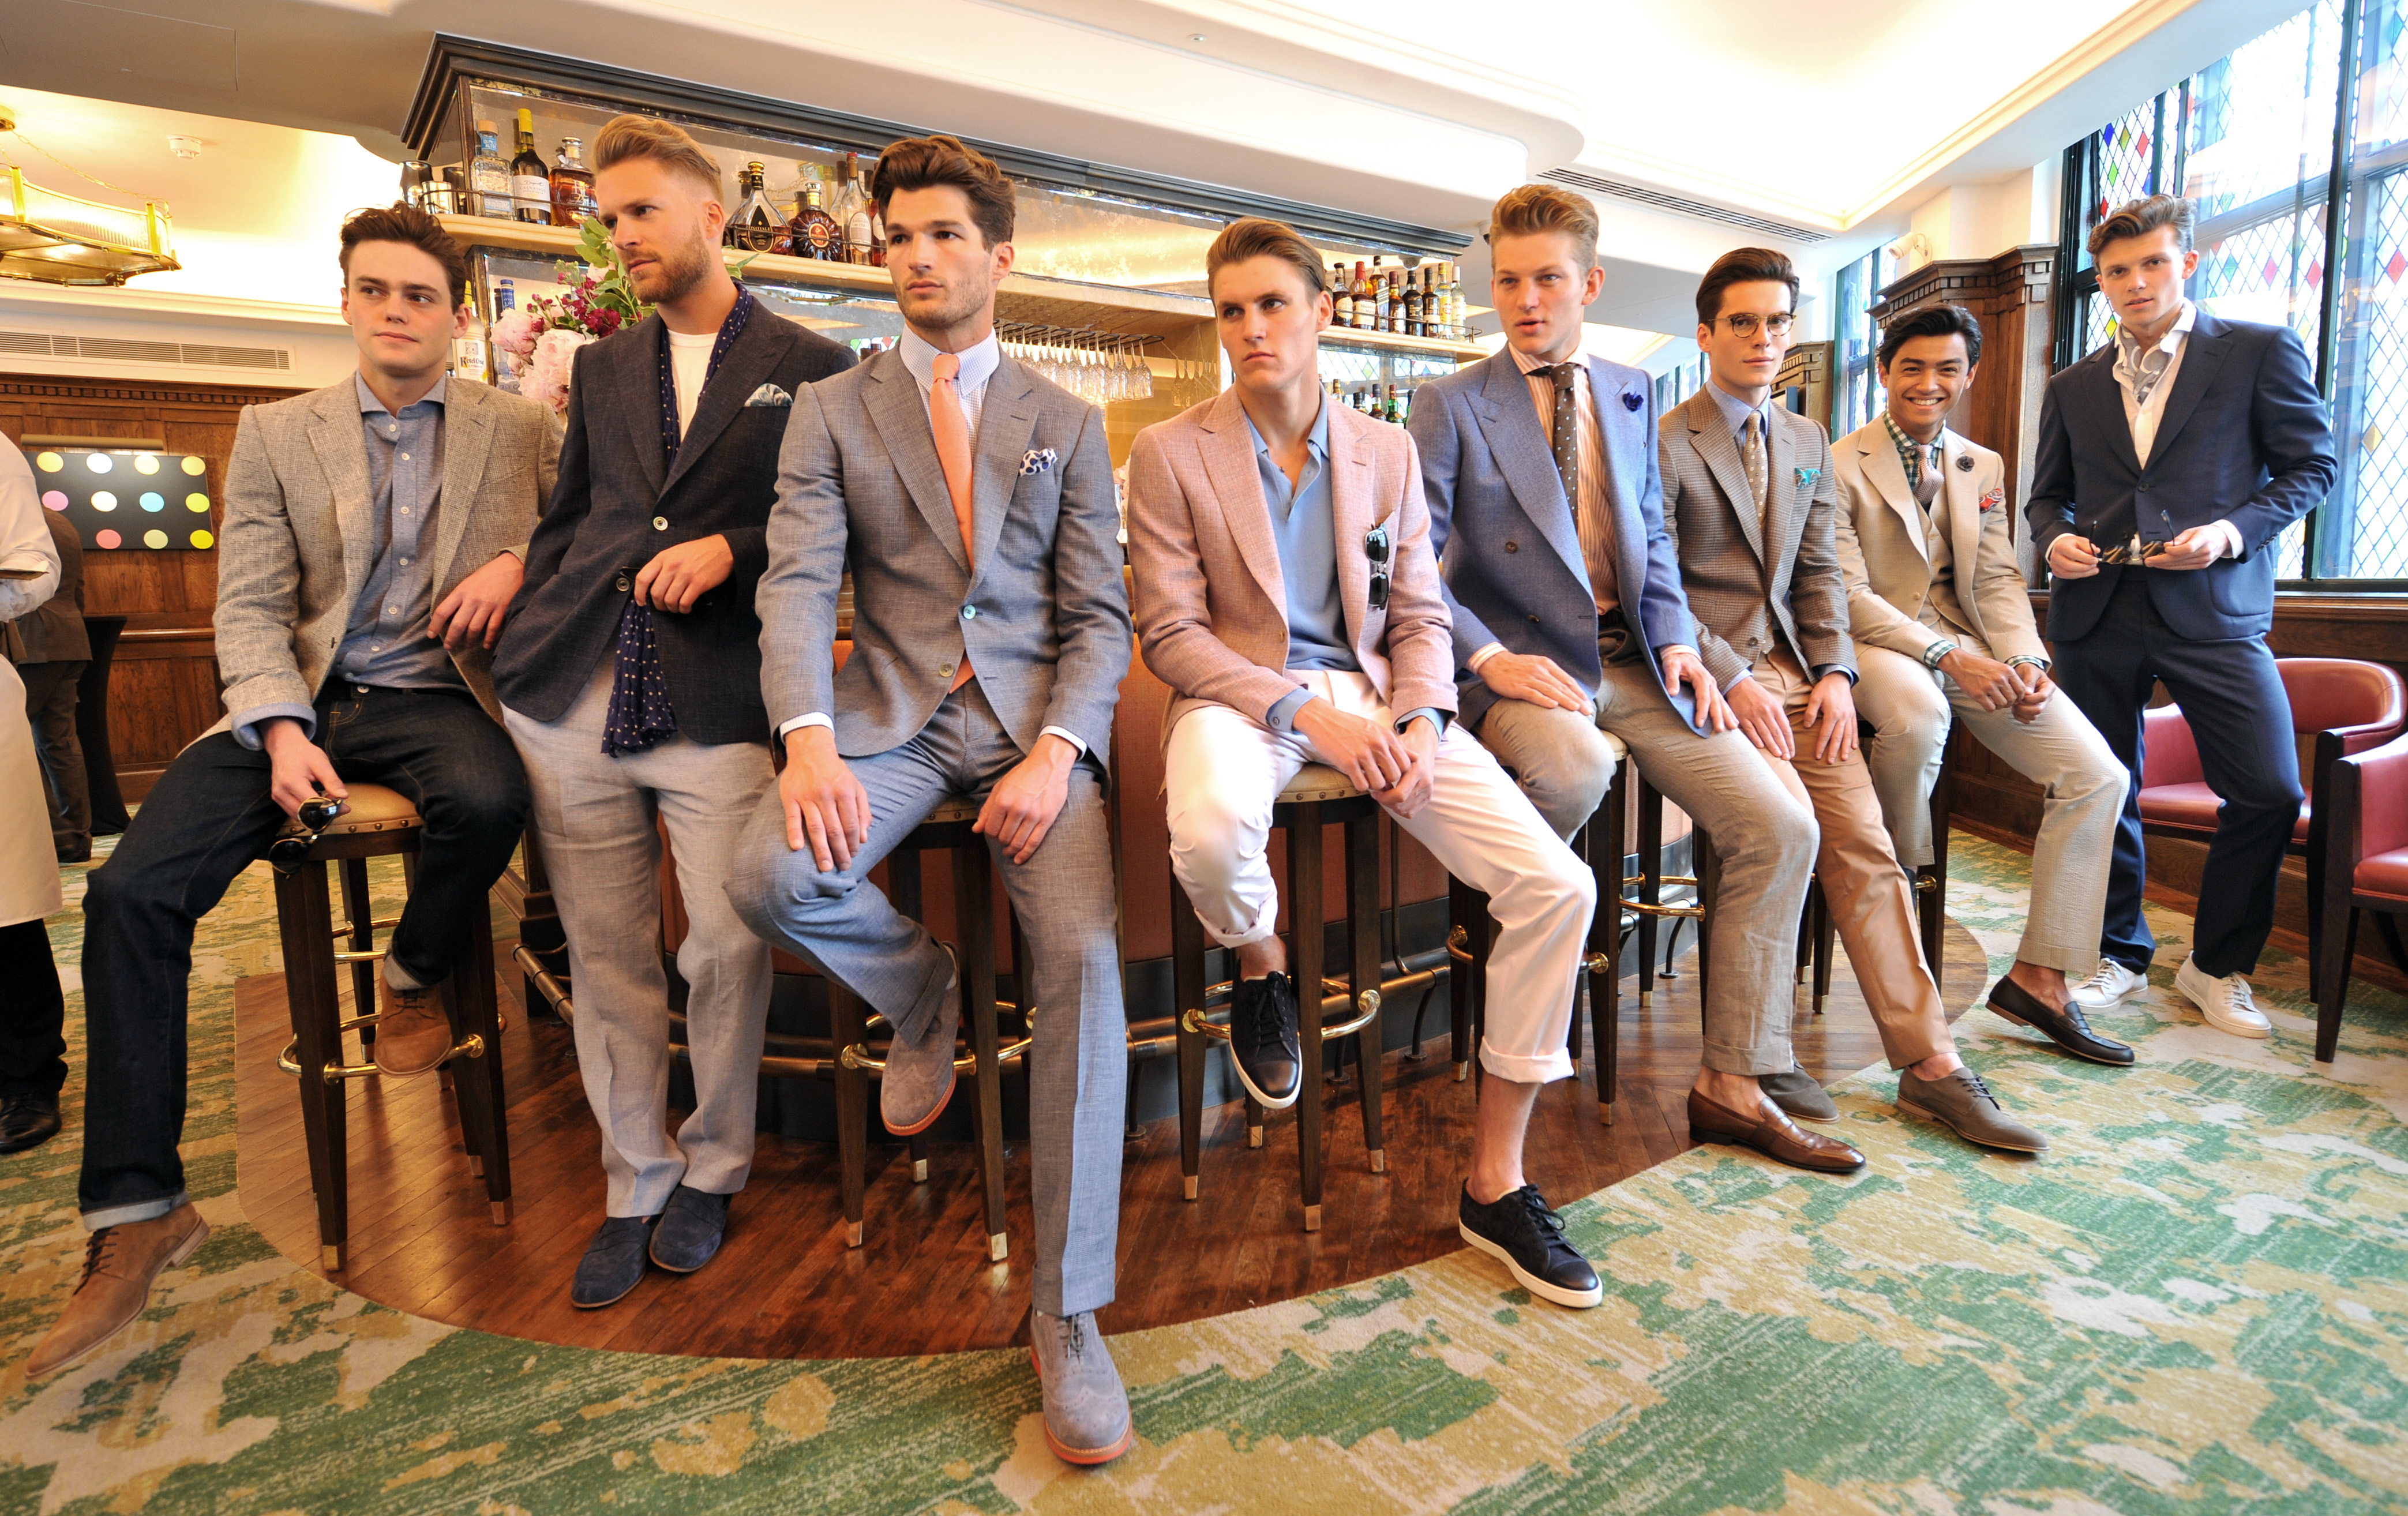 Chester Barrie - London Collections Men Spring/Summer 2016 - The Ivy Restaurant, London, United Kingdom  14/06/2015  ÃRichard Chambury/richfoto.com    Please contact:  Richard Chambury m : +44 (0)7968 894411 e : rich@richfoto.com  Richfoto Limited,  128 Queenswood Gardens, London, E11 3SG, United Kingdom  Company No: 4470144 VAT: GB799125776